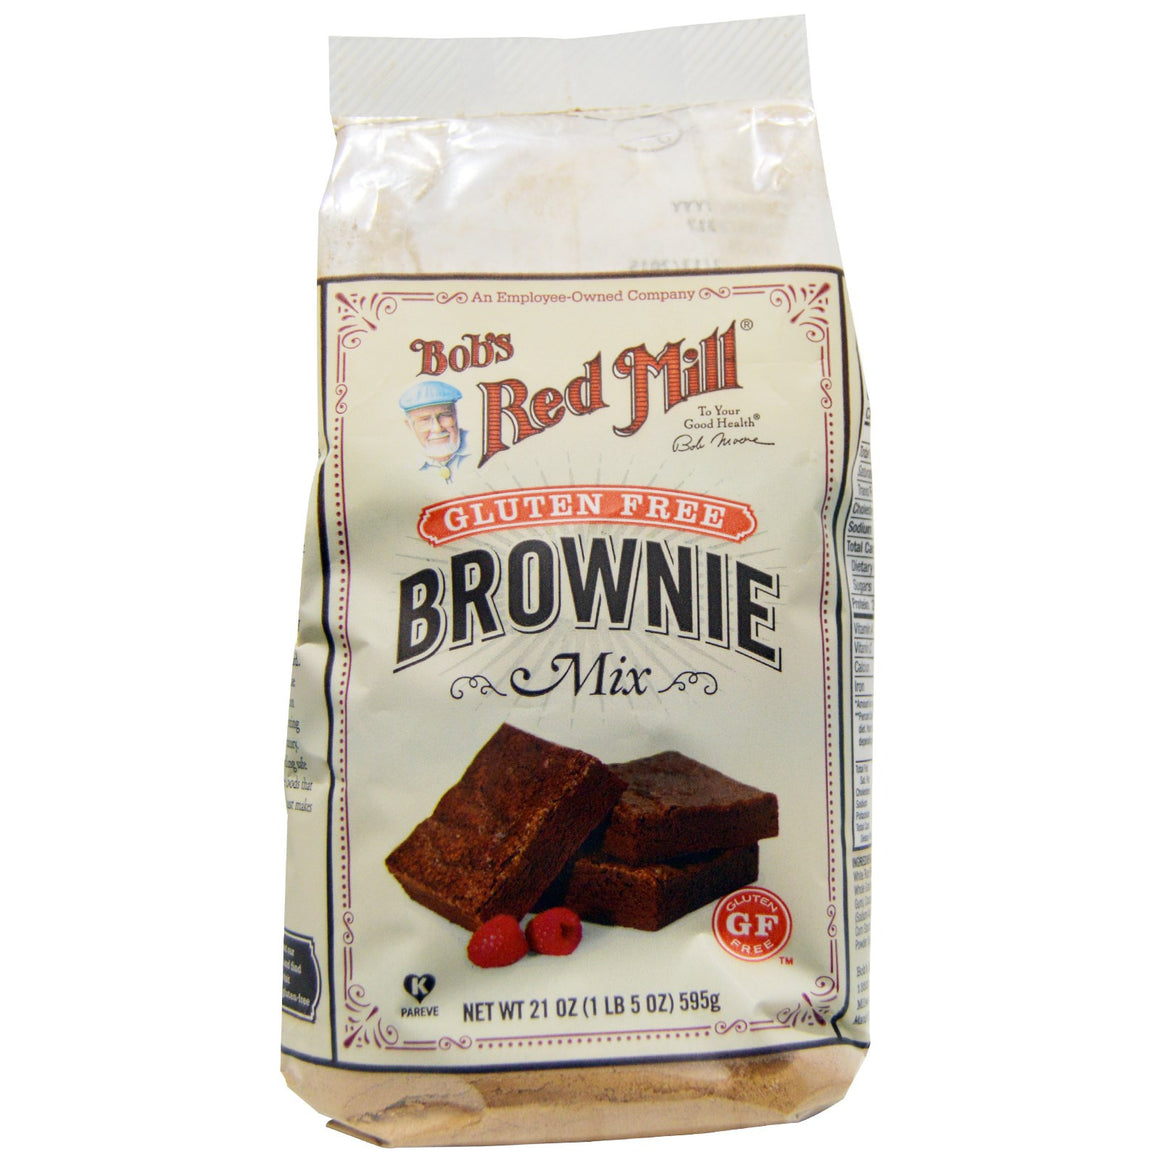 Bob's Red Mill - Brownie Mix 595g